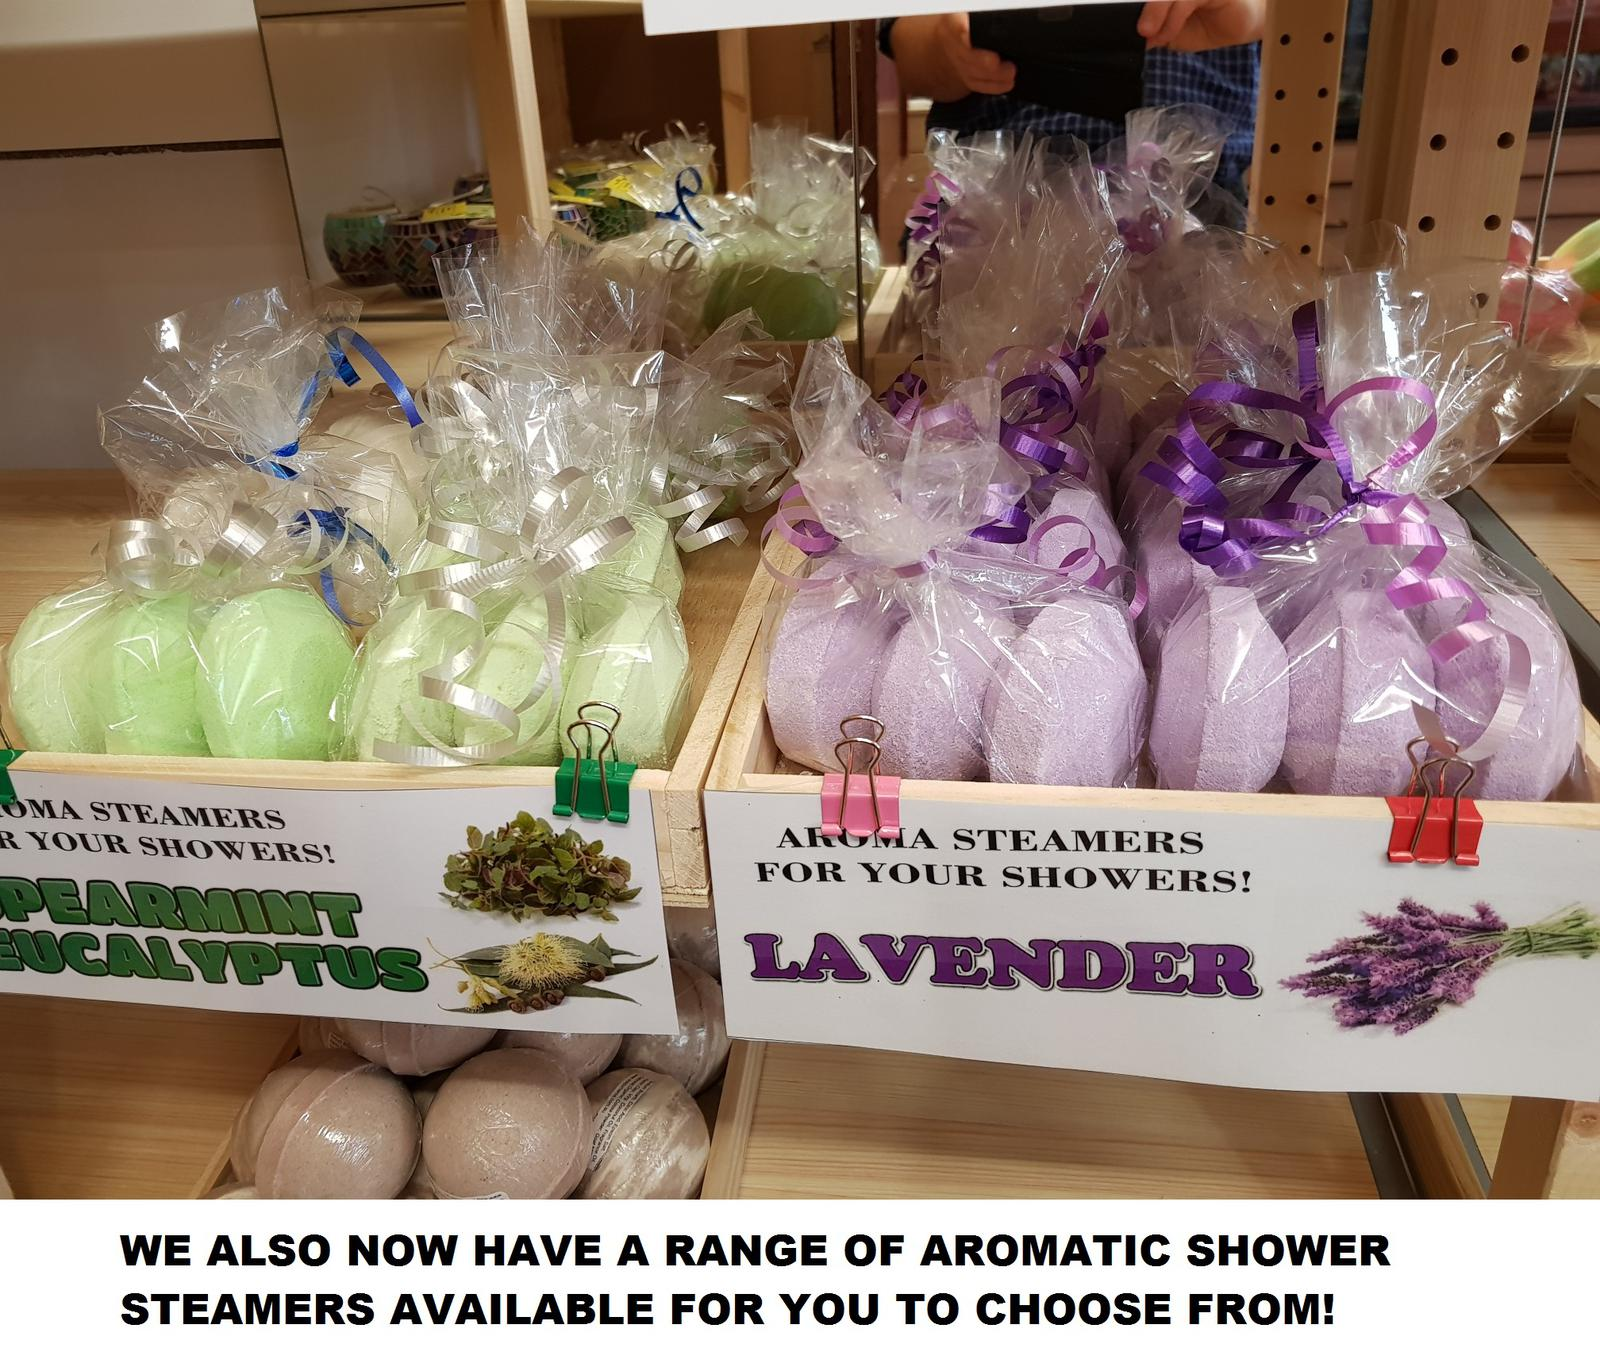 OUR LARGE RANGE OF AROMATIC SHOWER STEAMERS